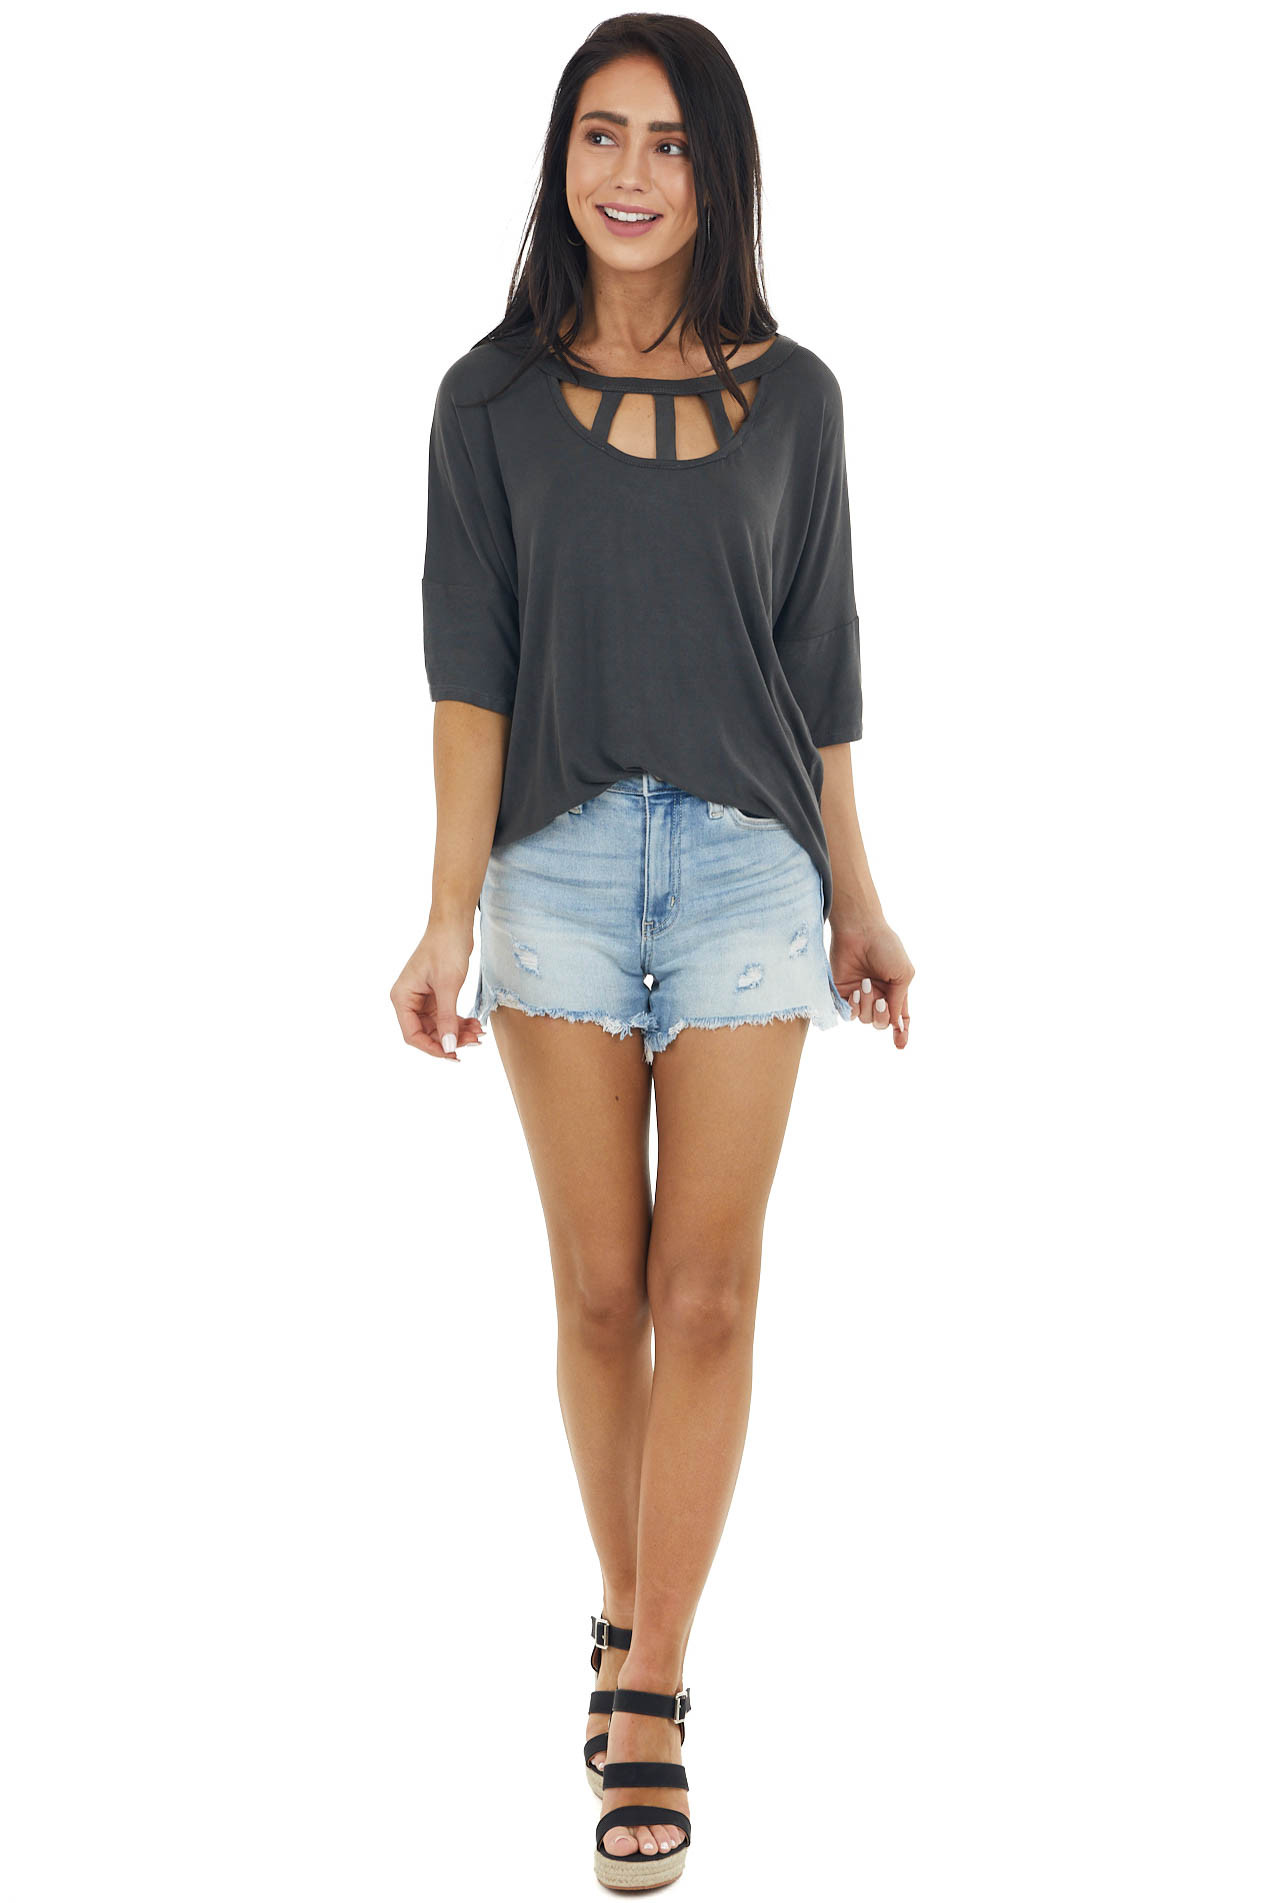 Charcoal Half Sleeve Knit Top with Chest Cut Outs